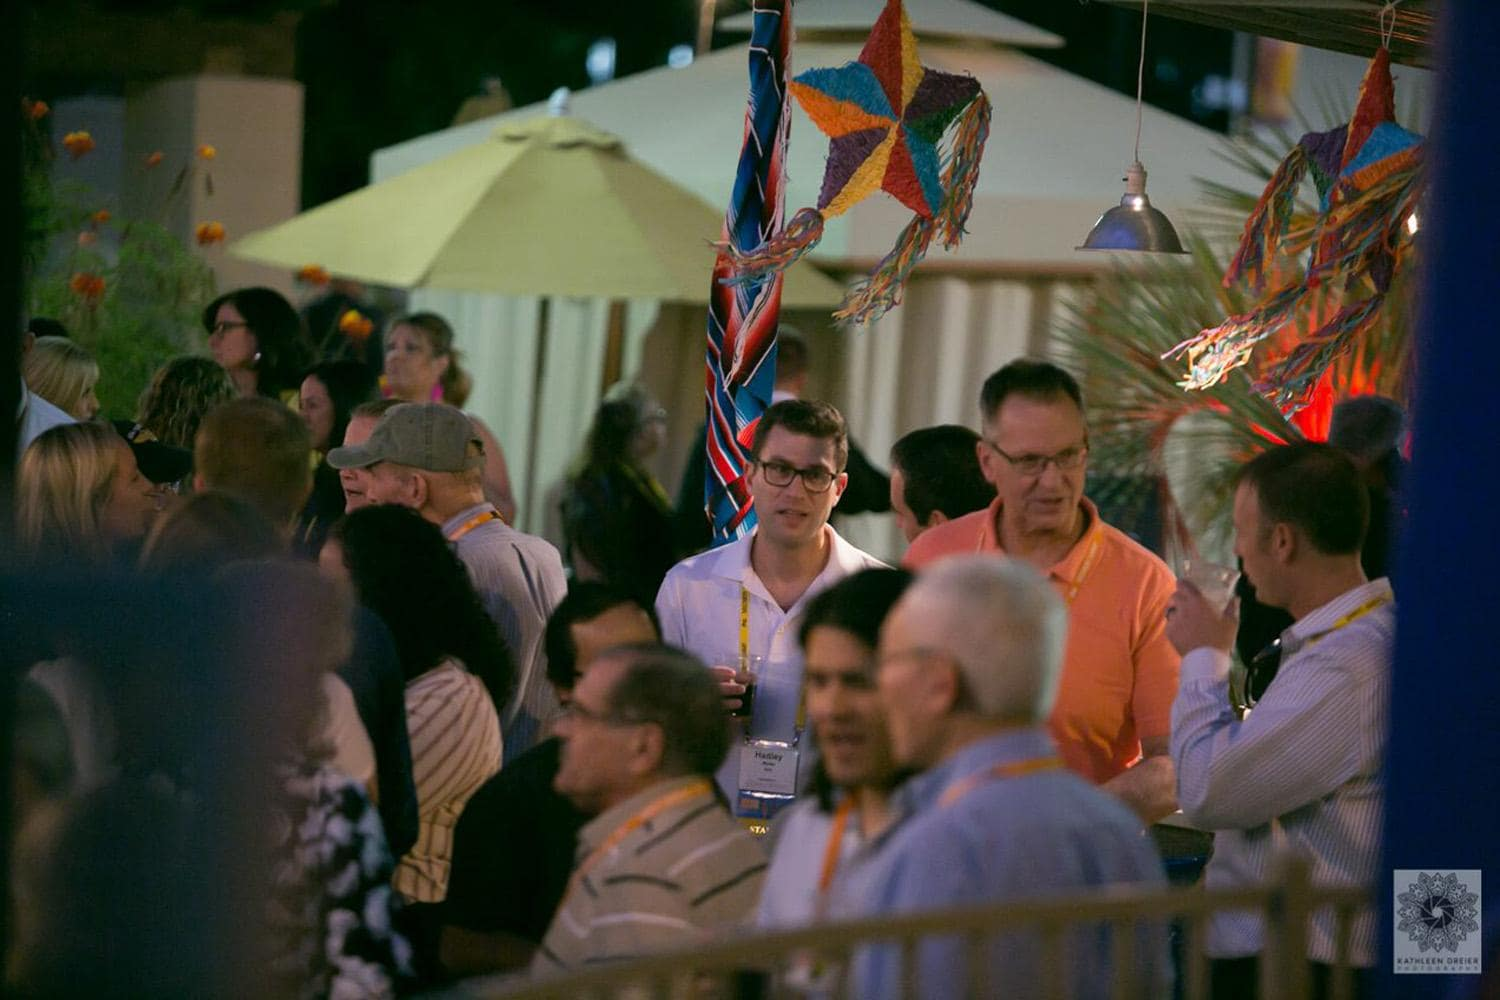 Discovery Summit dinner attendees